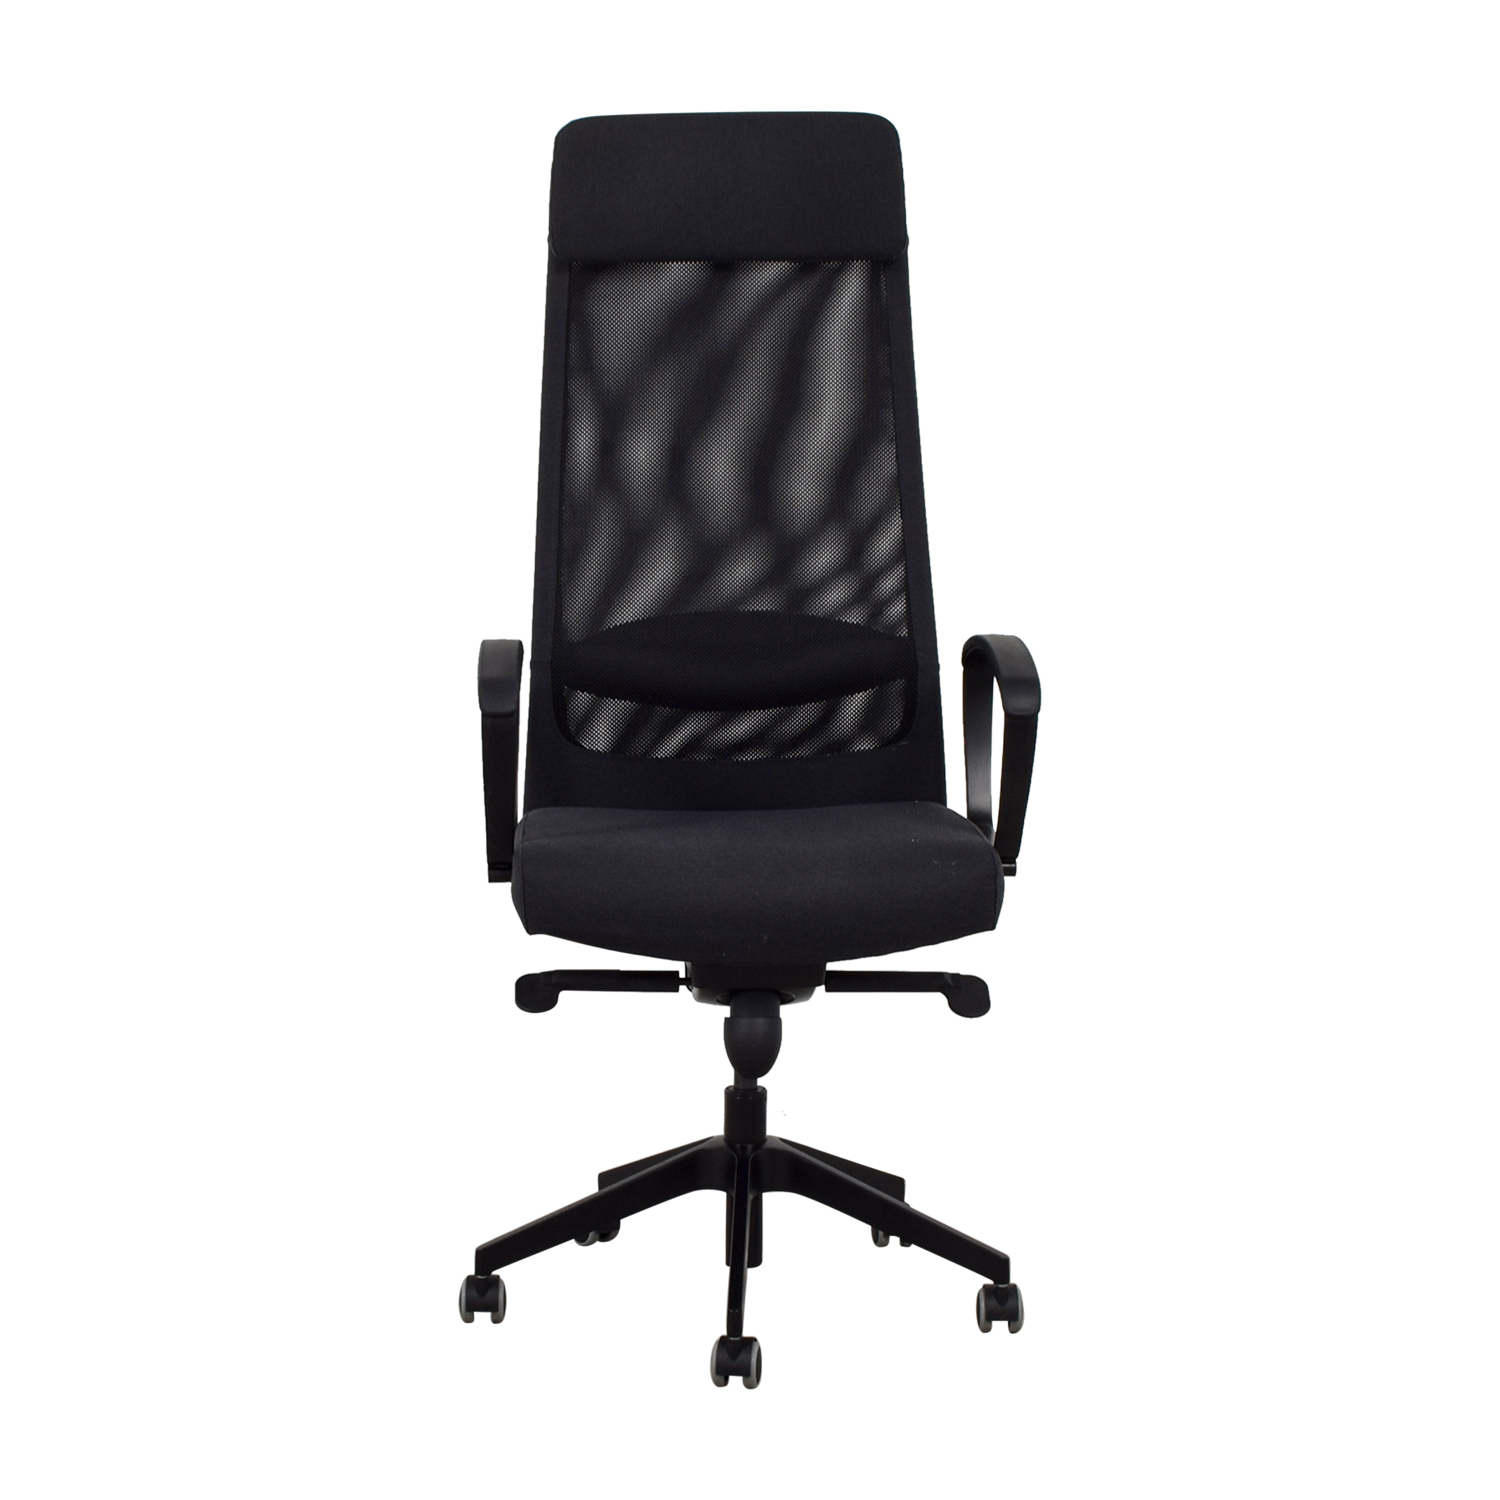 ikea office furniture 68 ikea ikea black office chair chairs 30035